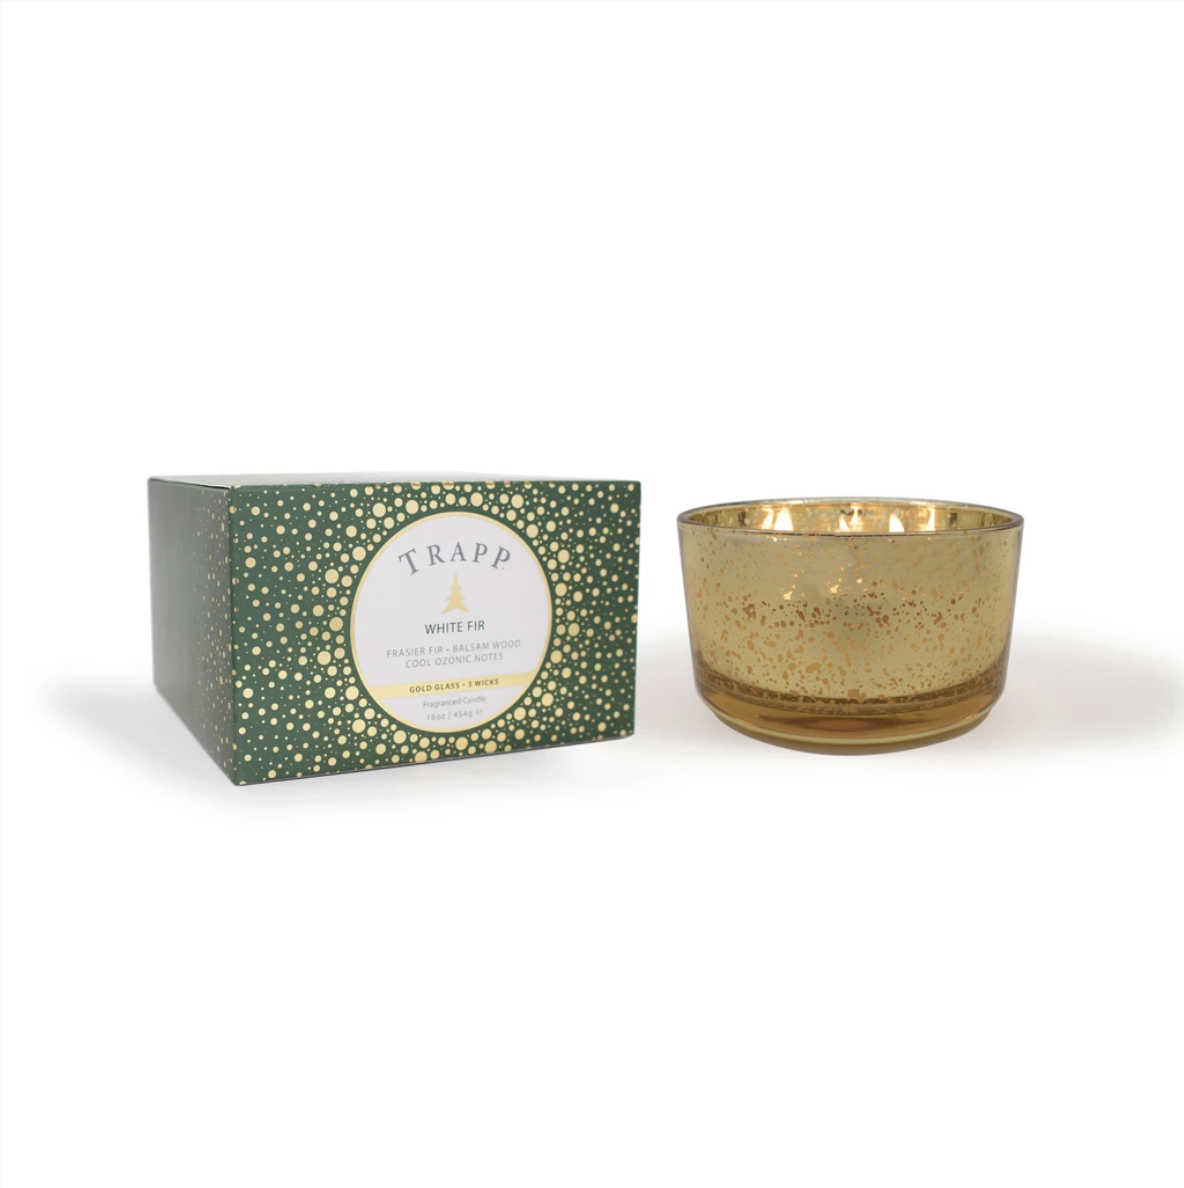 Trapp Candle No. 56 White Fir 3-Wick